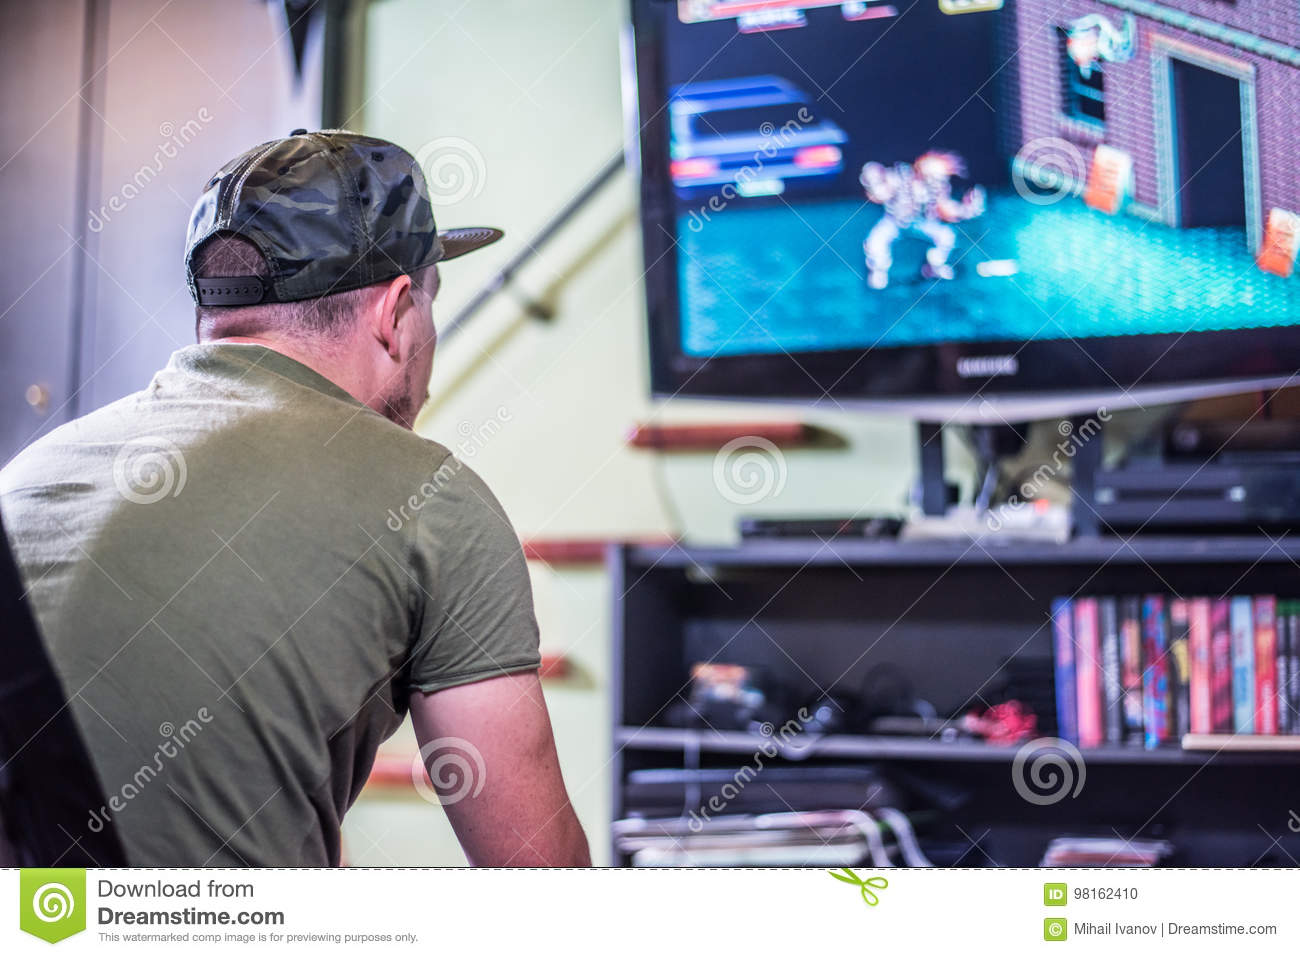 Retro Gamer In Front Of The TV Stock Photo - Image of being, home